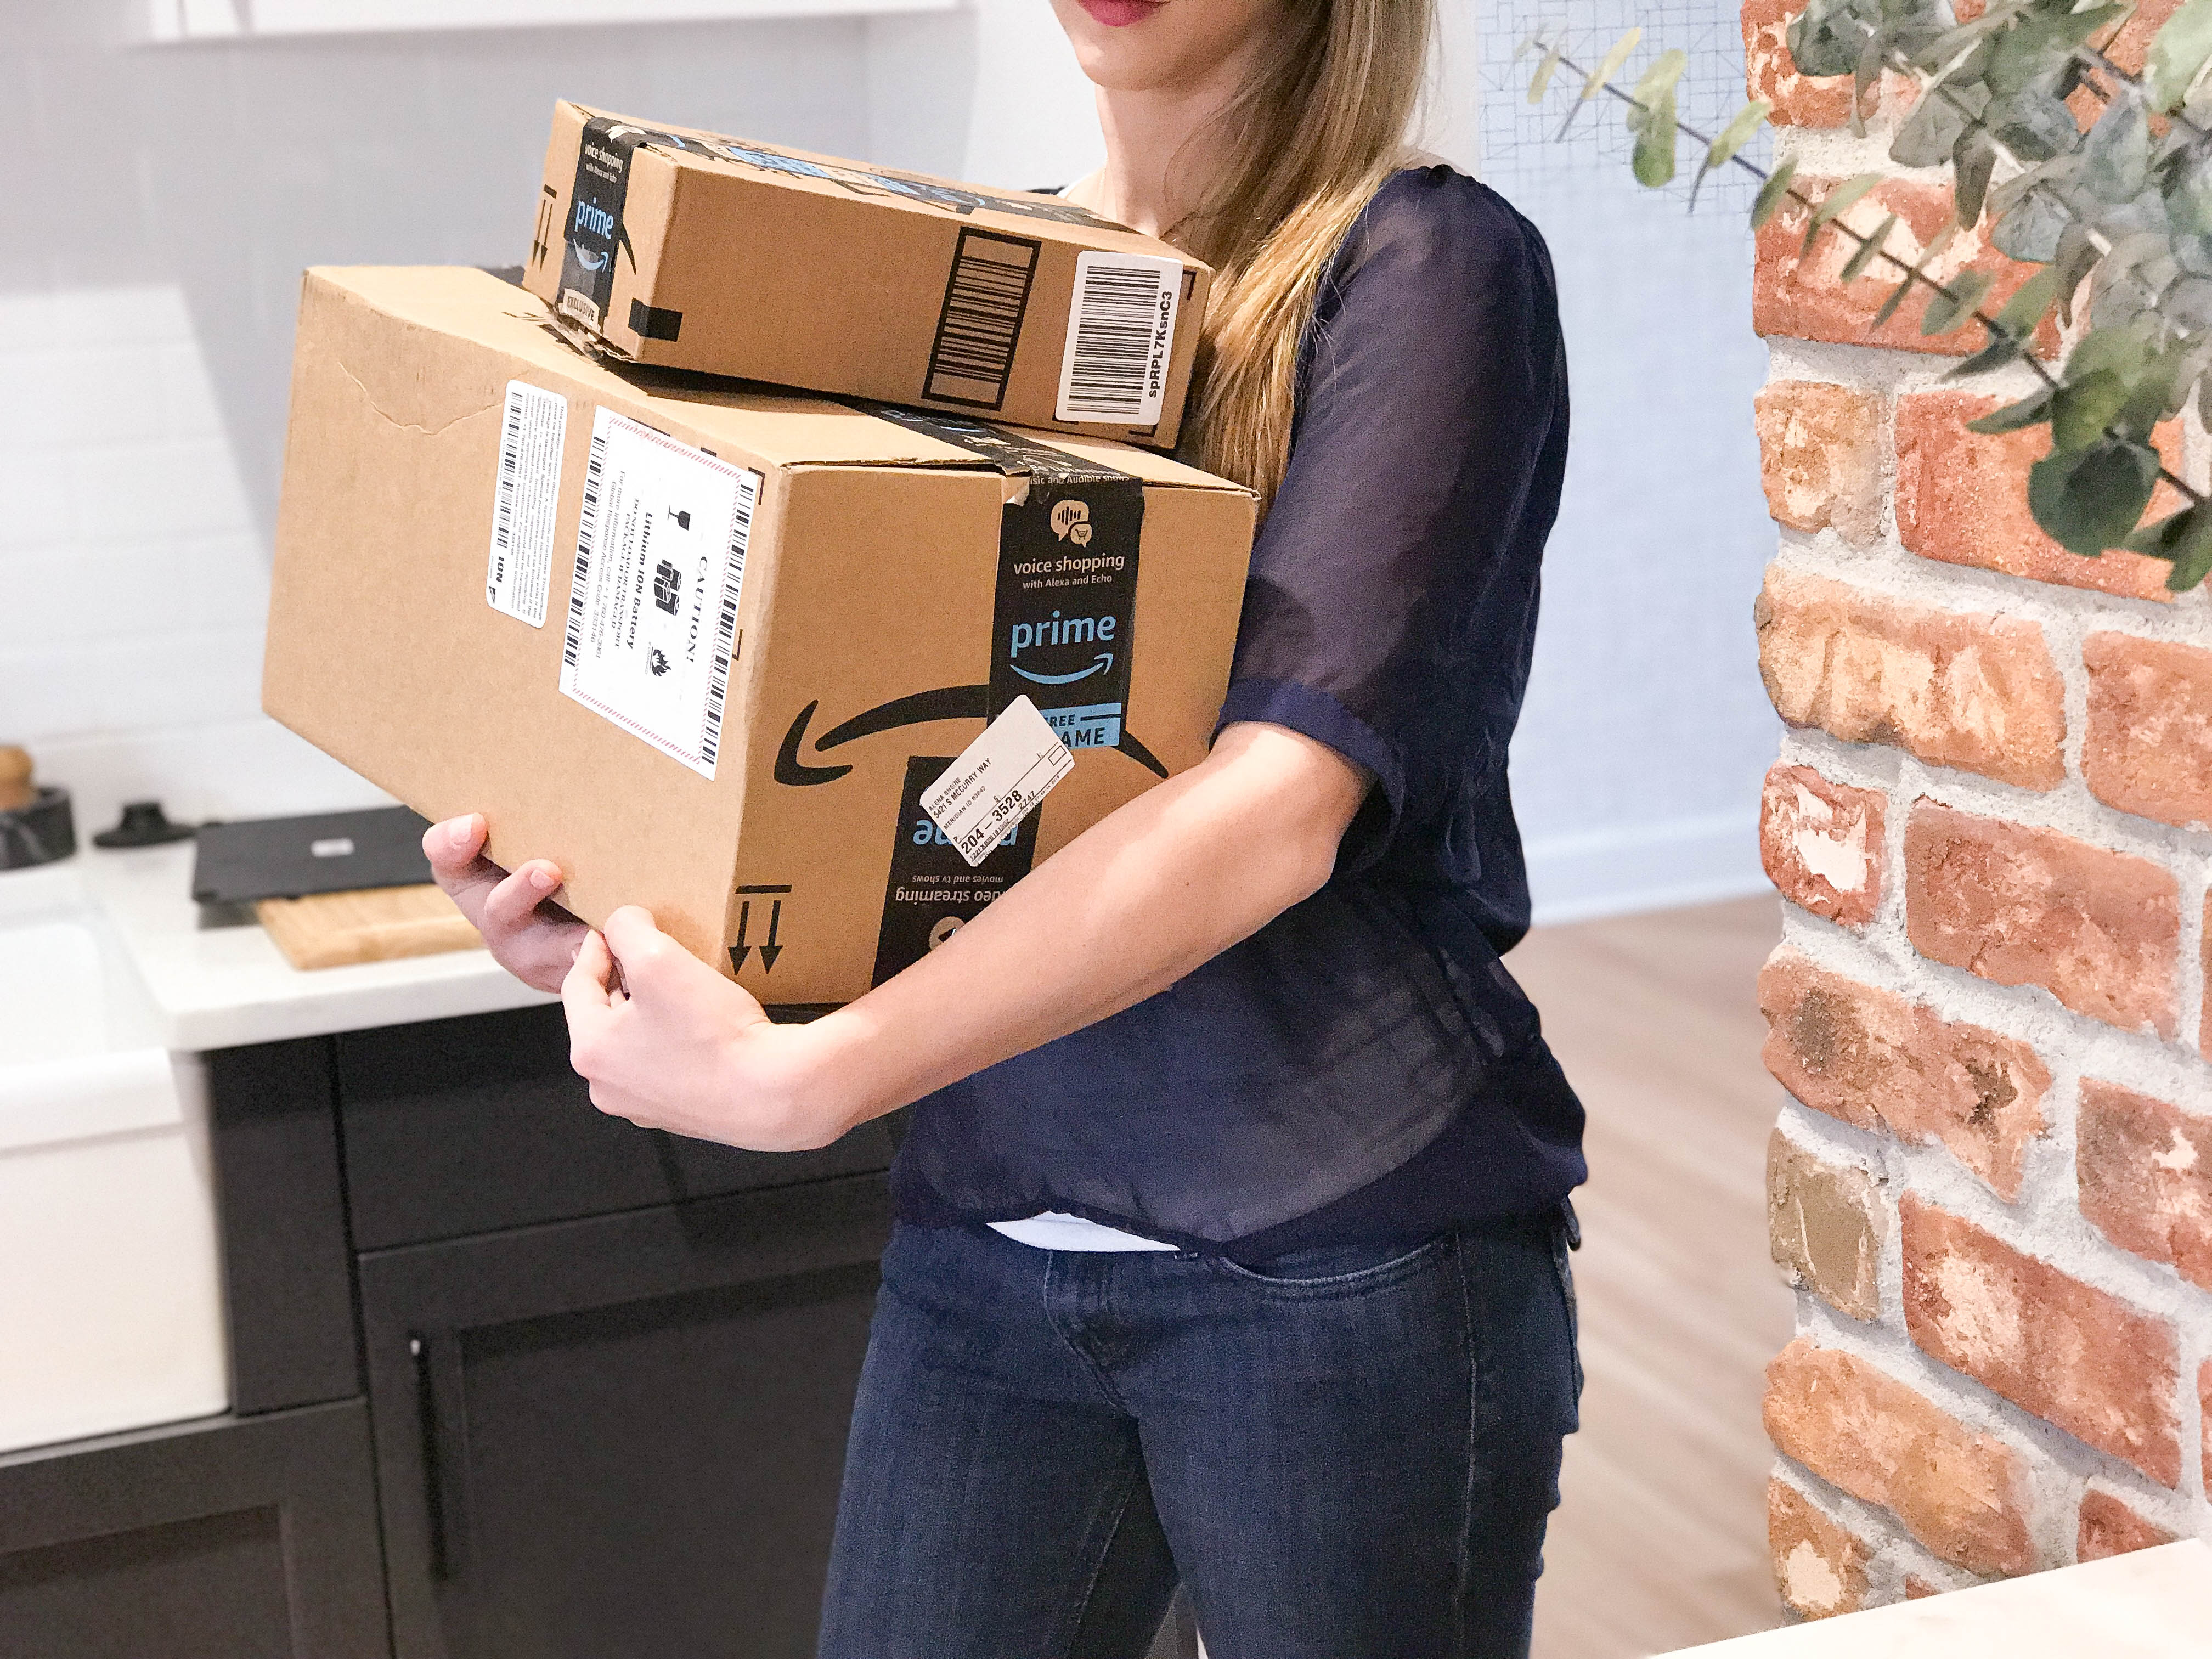 a9dba5462205 You Shouldn t Have an Amazon Prime Membership Unless. . . - The ...